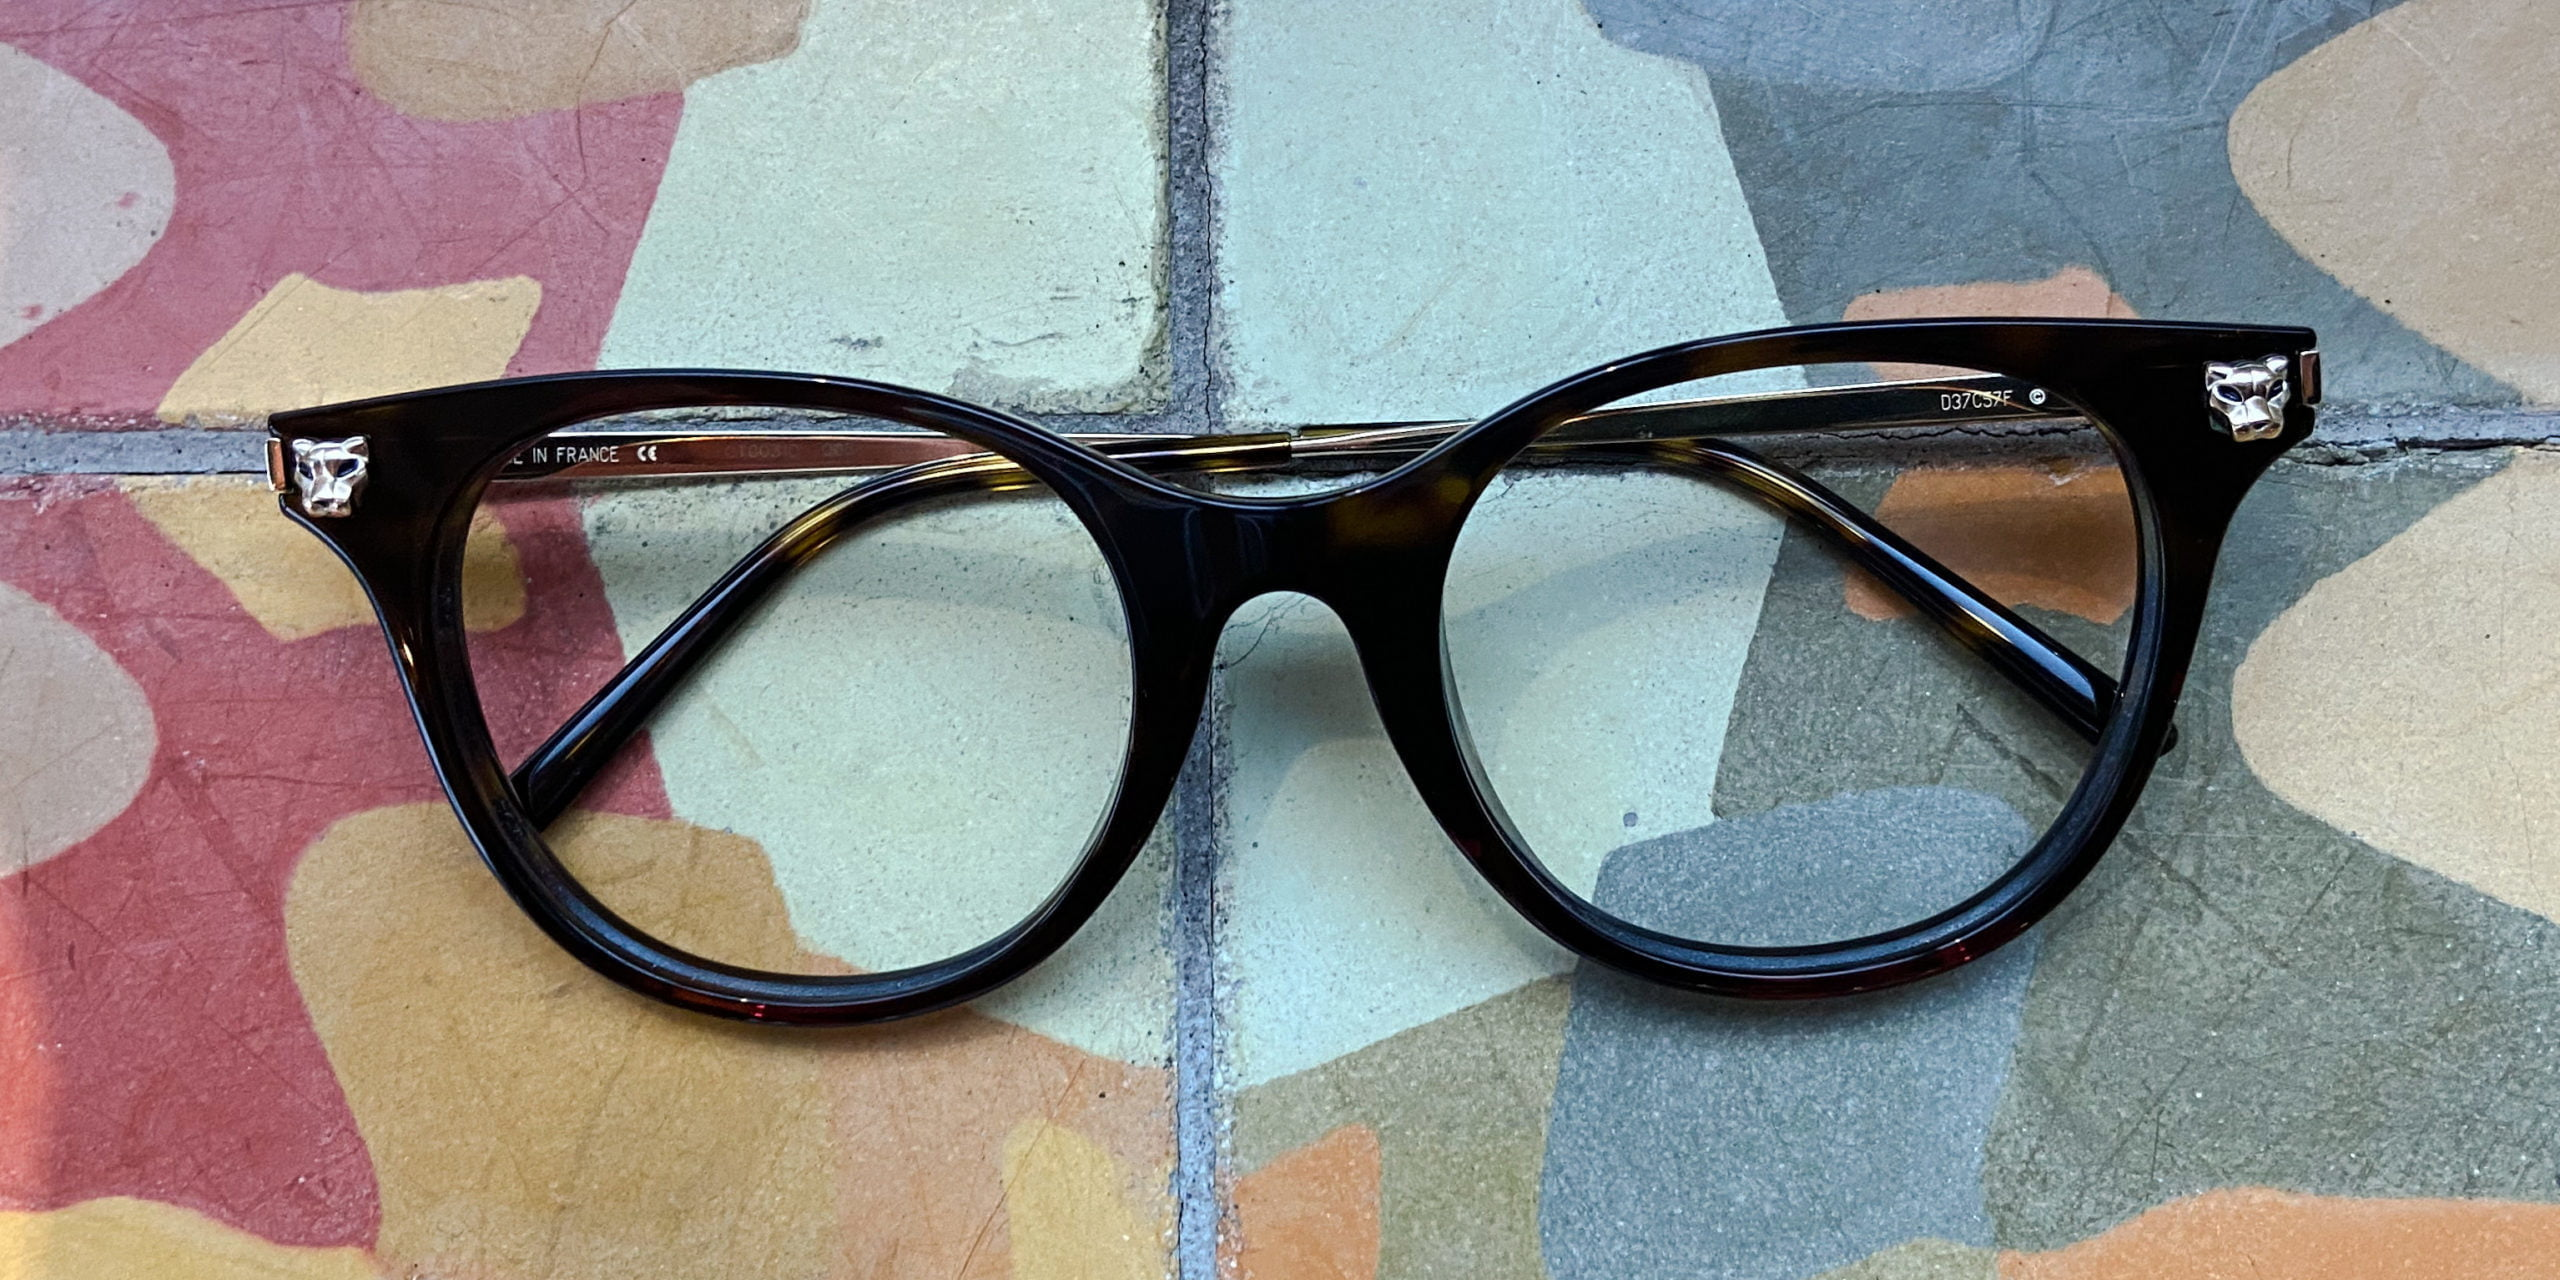 Cartier Eyewear | Available at Dr. Tavel